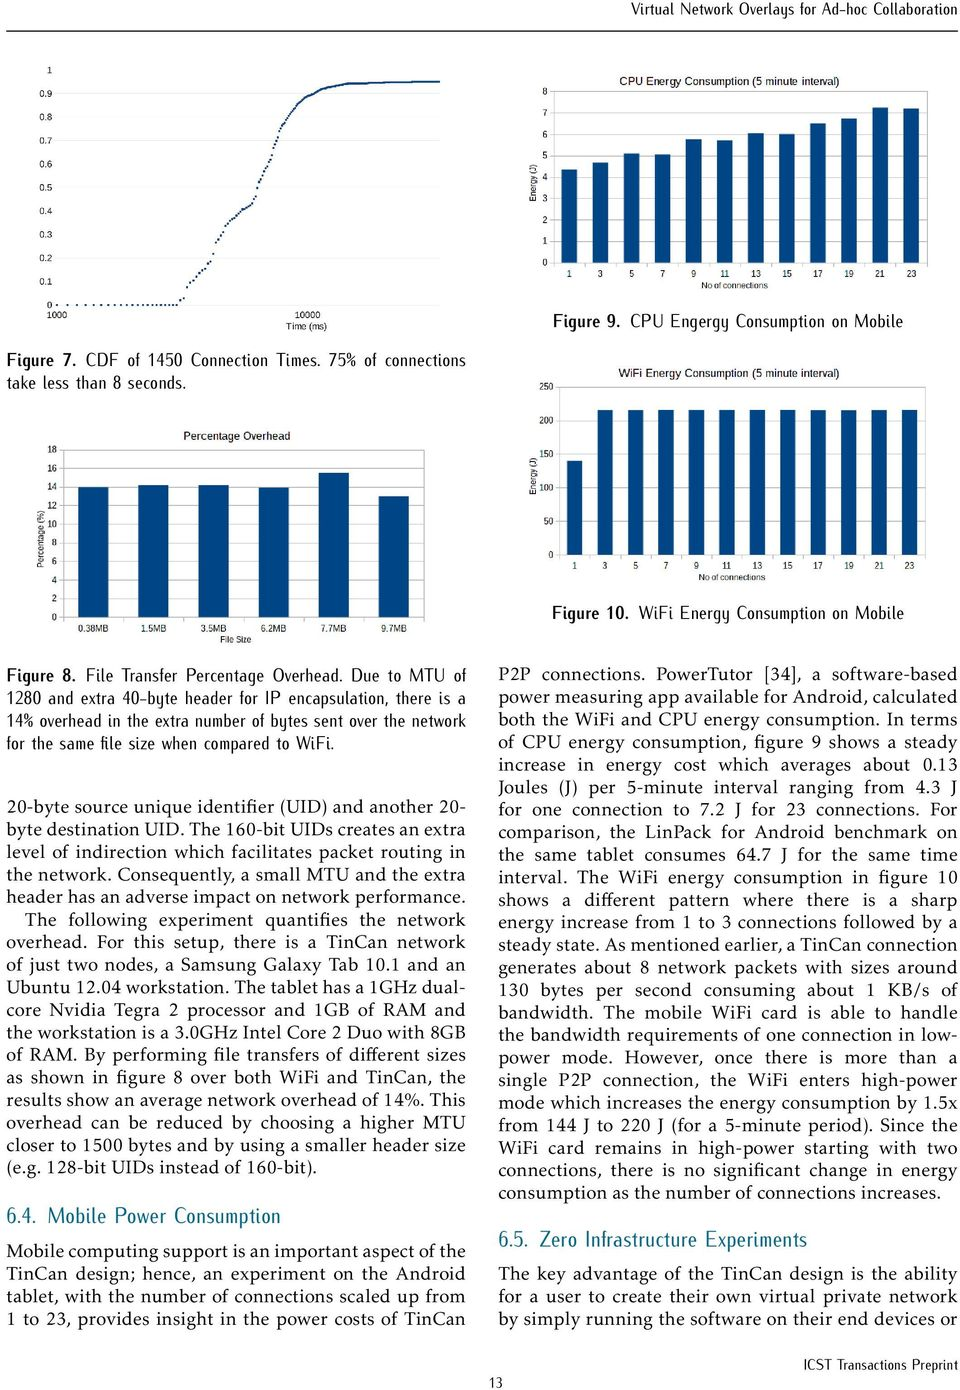 Due to MTU of 1280 and extra 40-byte header for IP encapsulation, there is a 14% overhead in the extra number of bytes sent over the network for the same file size when compared to WiFi.